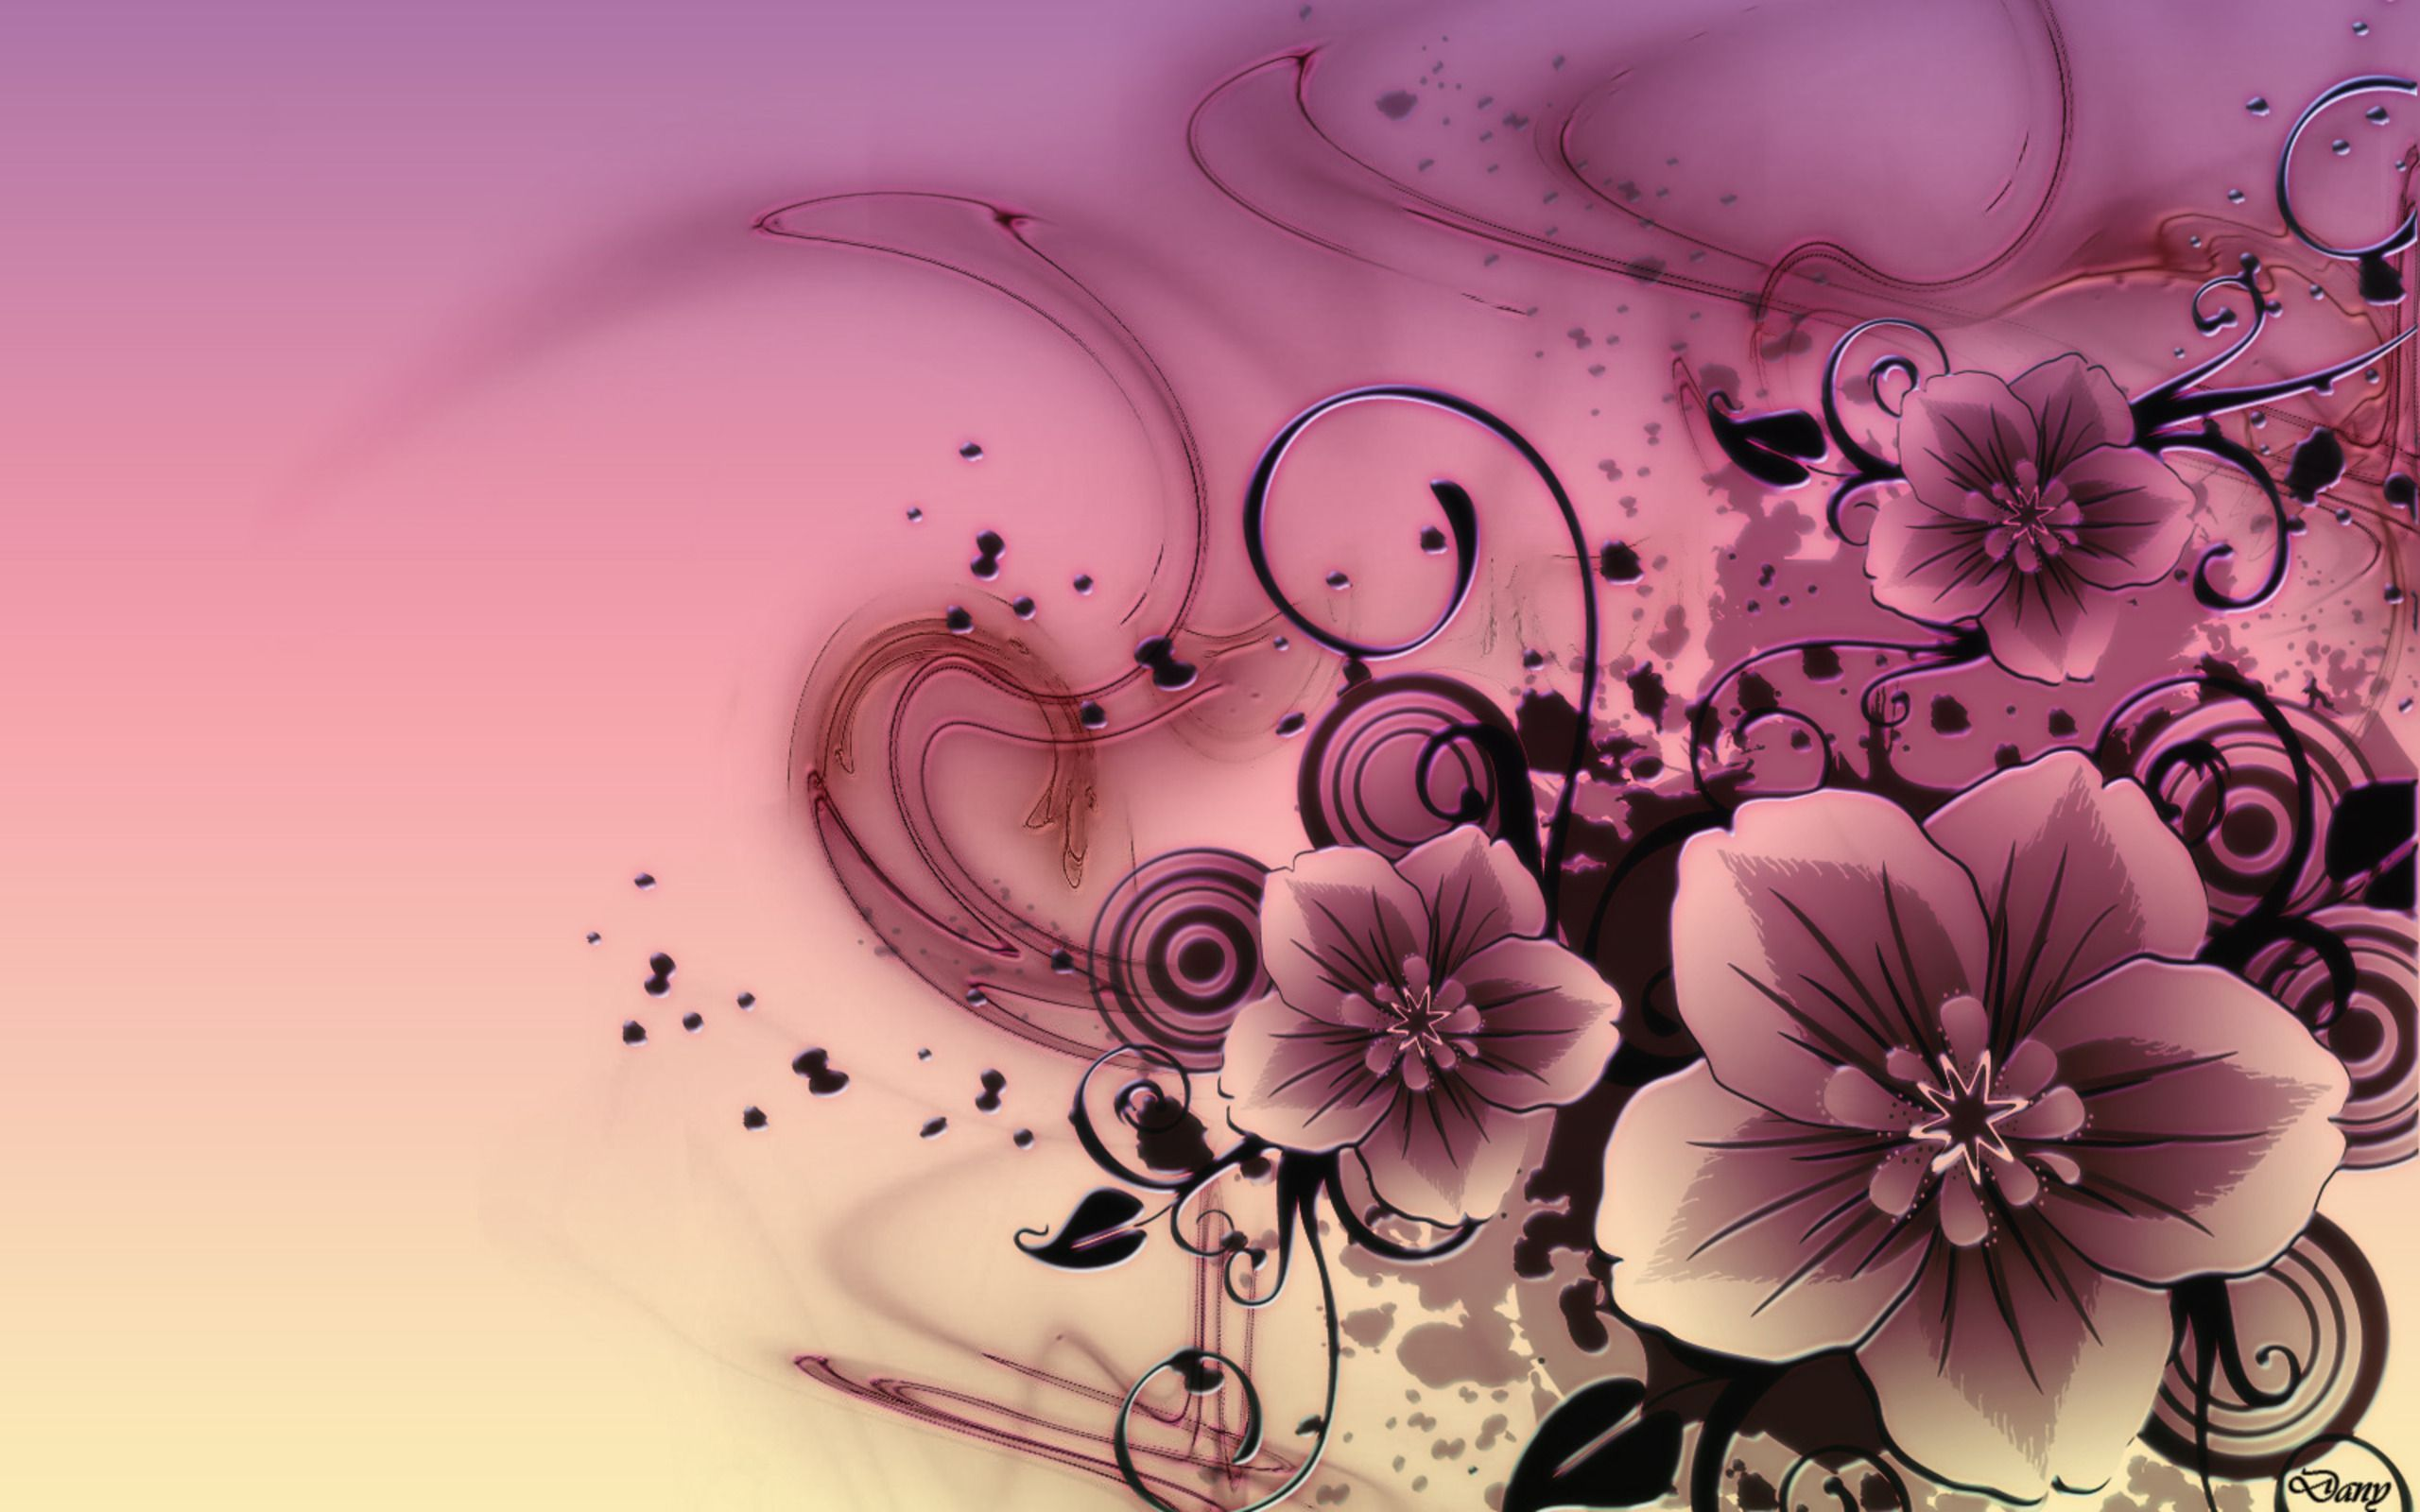 Abstract Floral Desktop Wallpapers Top Free Abstract Floral Desktop Backgrounds Wallpaperaccess